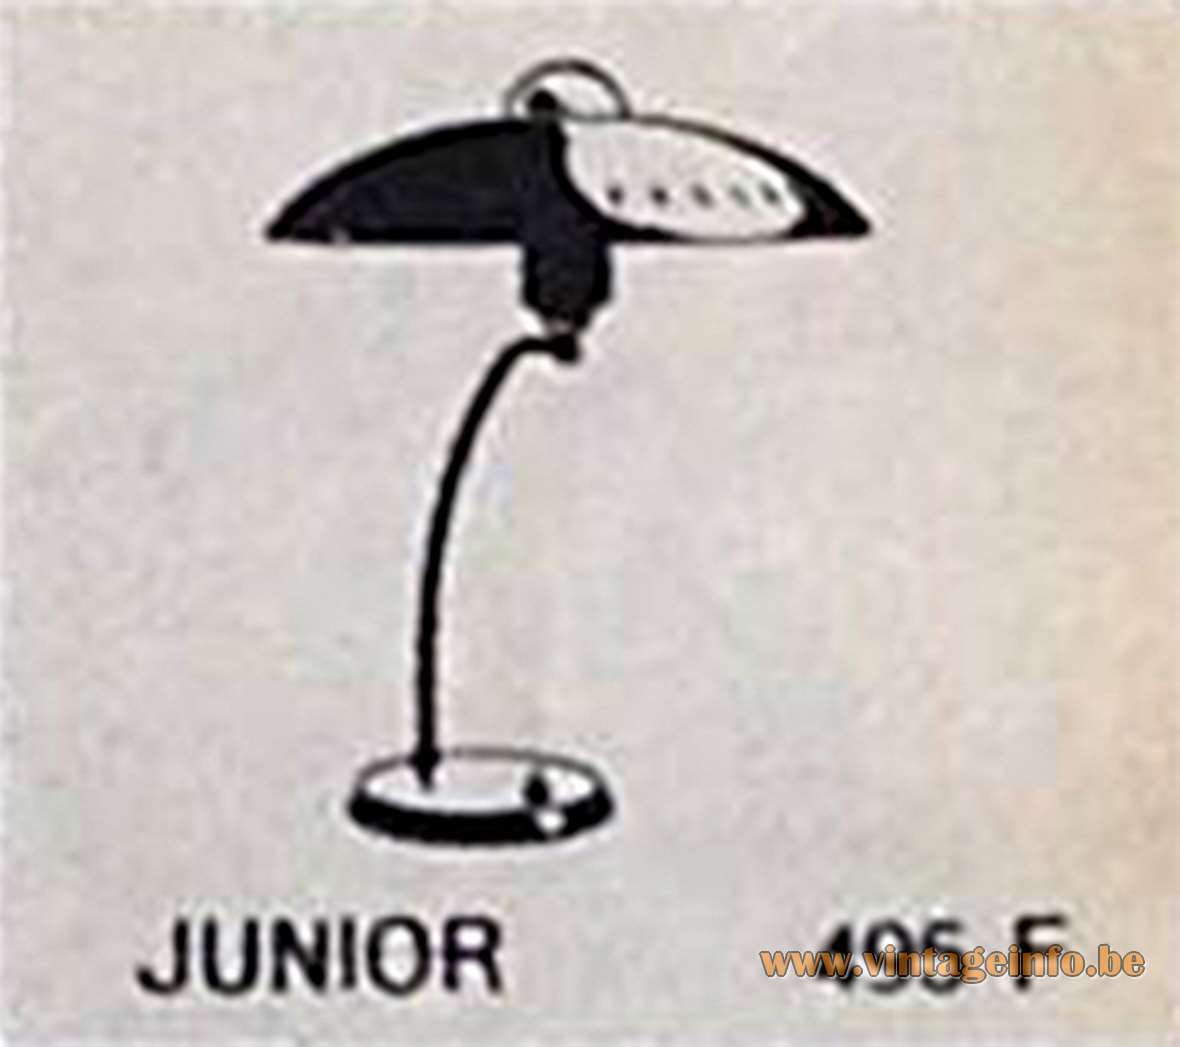 Louis Kalff Junior Desk Lamp Philips aluminium perforated lampshade curved brass rod publicity catalogue